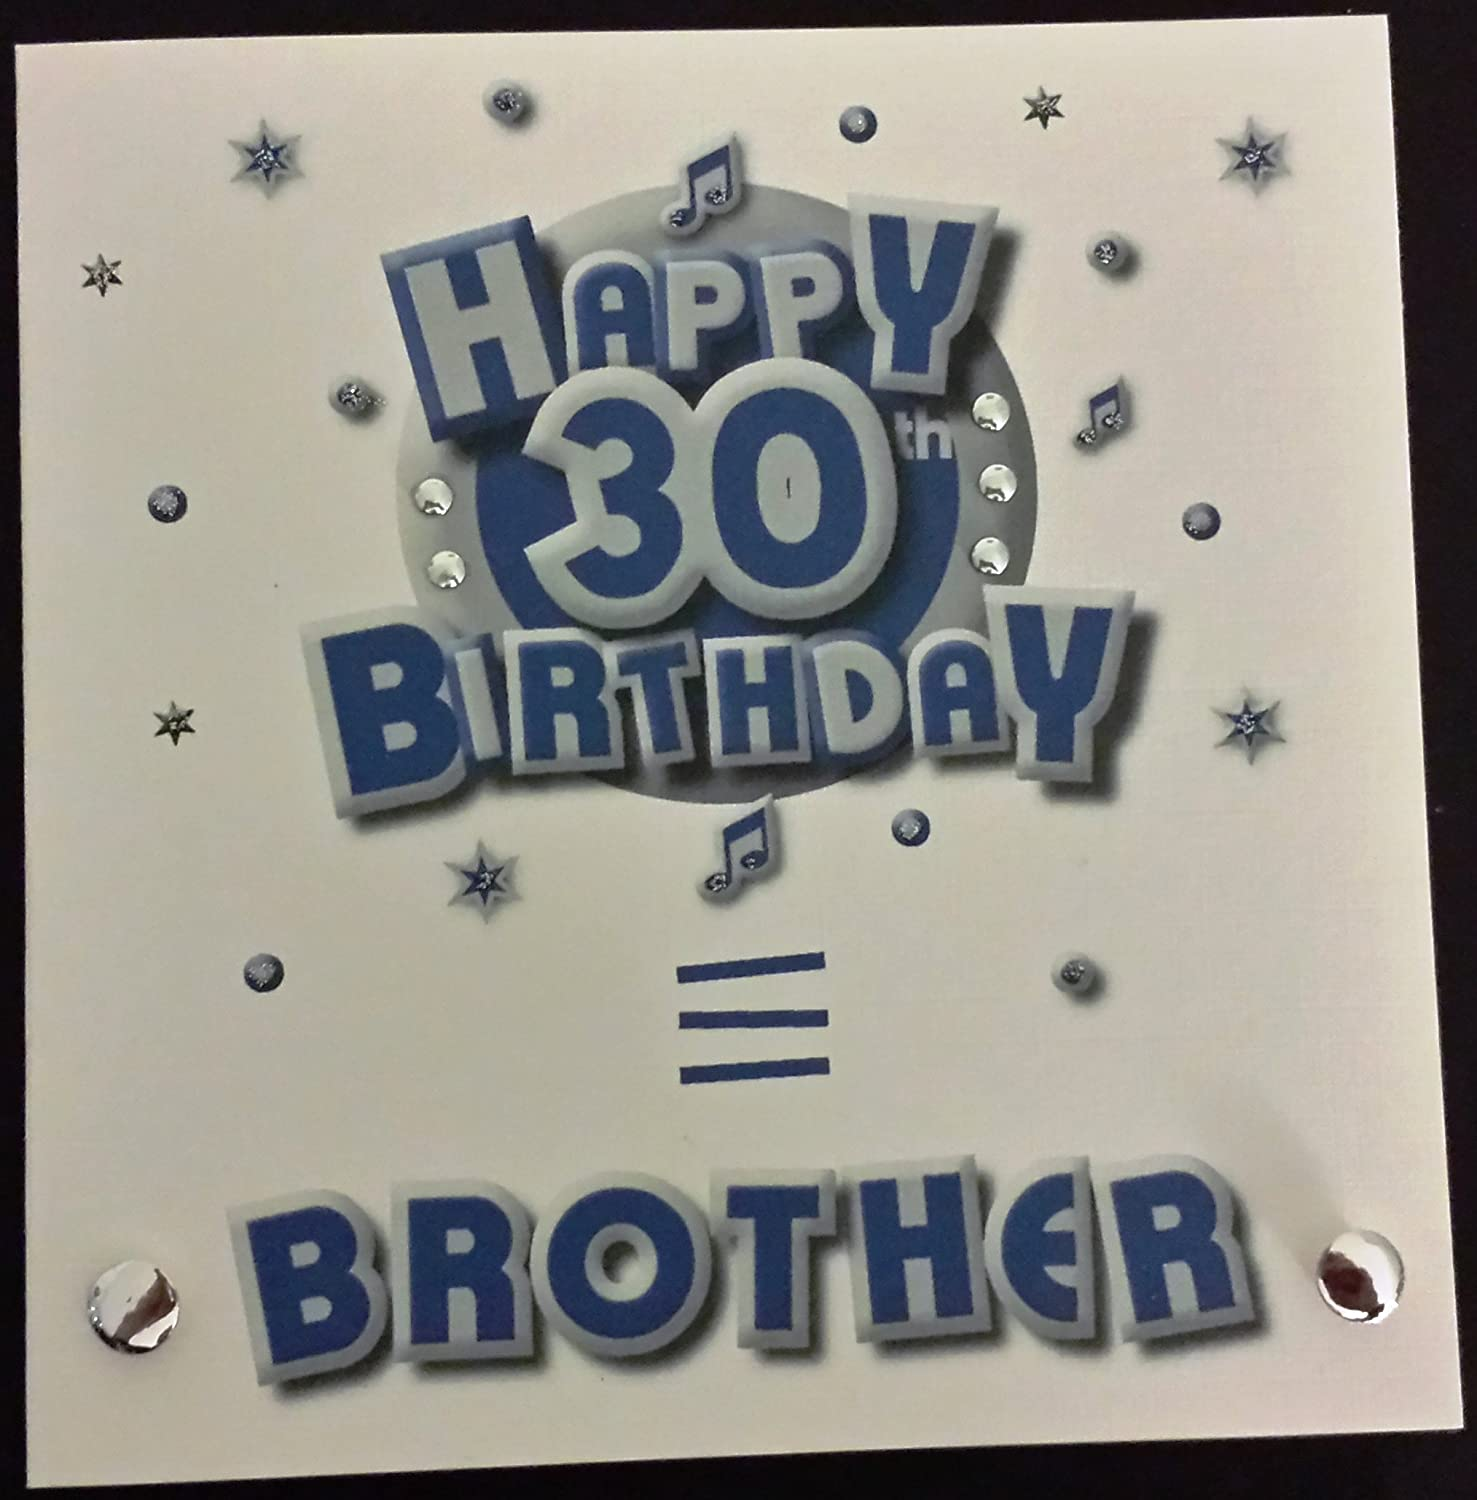 Happy birthday card brother 30th birthday handmade card amazon happy birthday card brother 30th birthday handmade card amazon kitchen home bookmarktalkfo Images